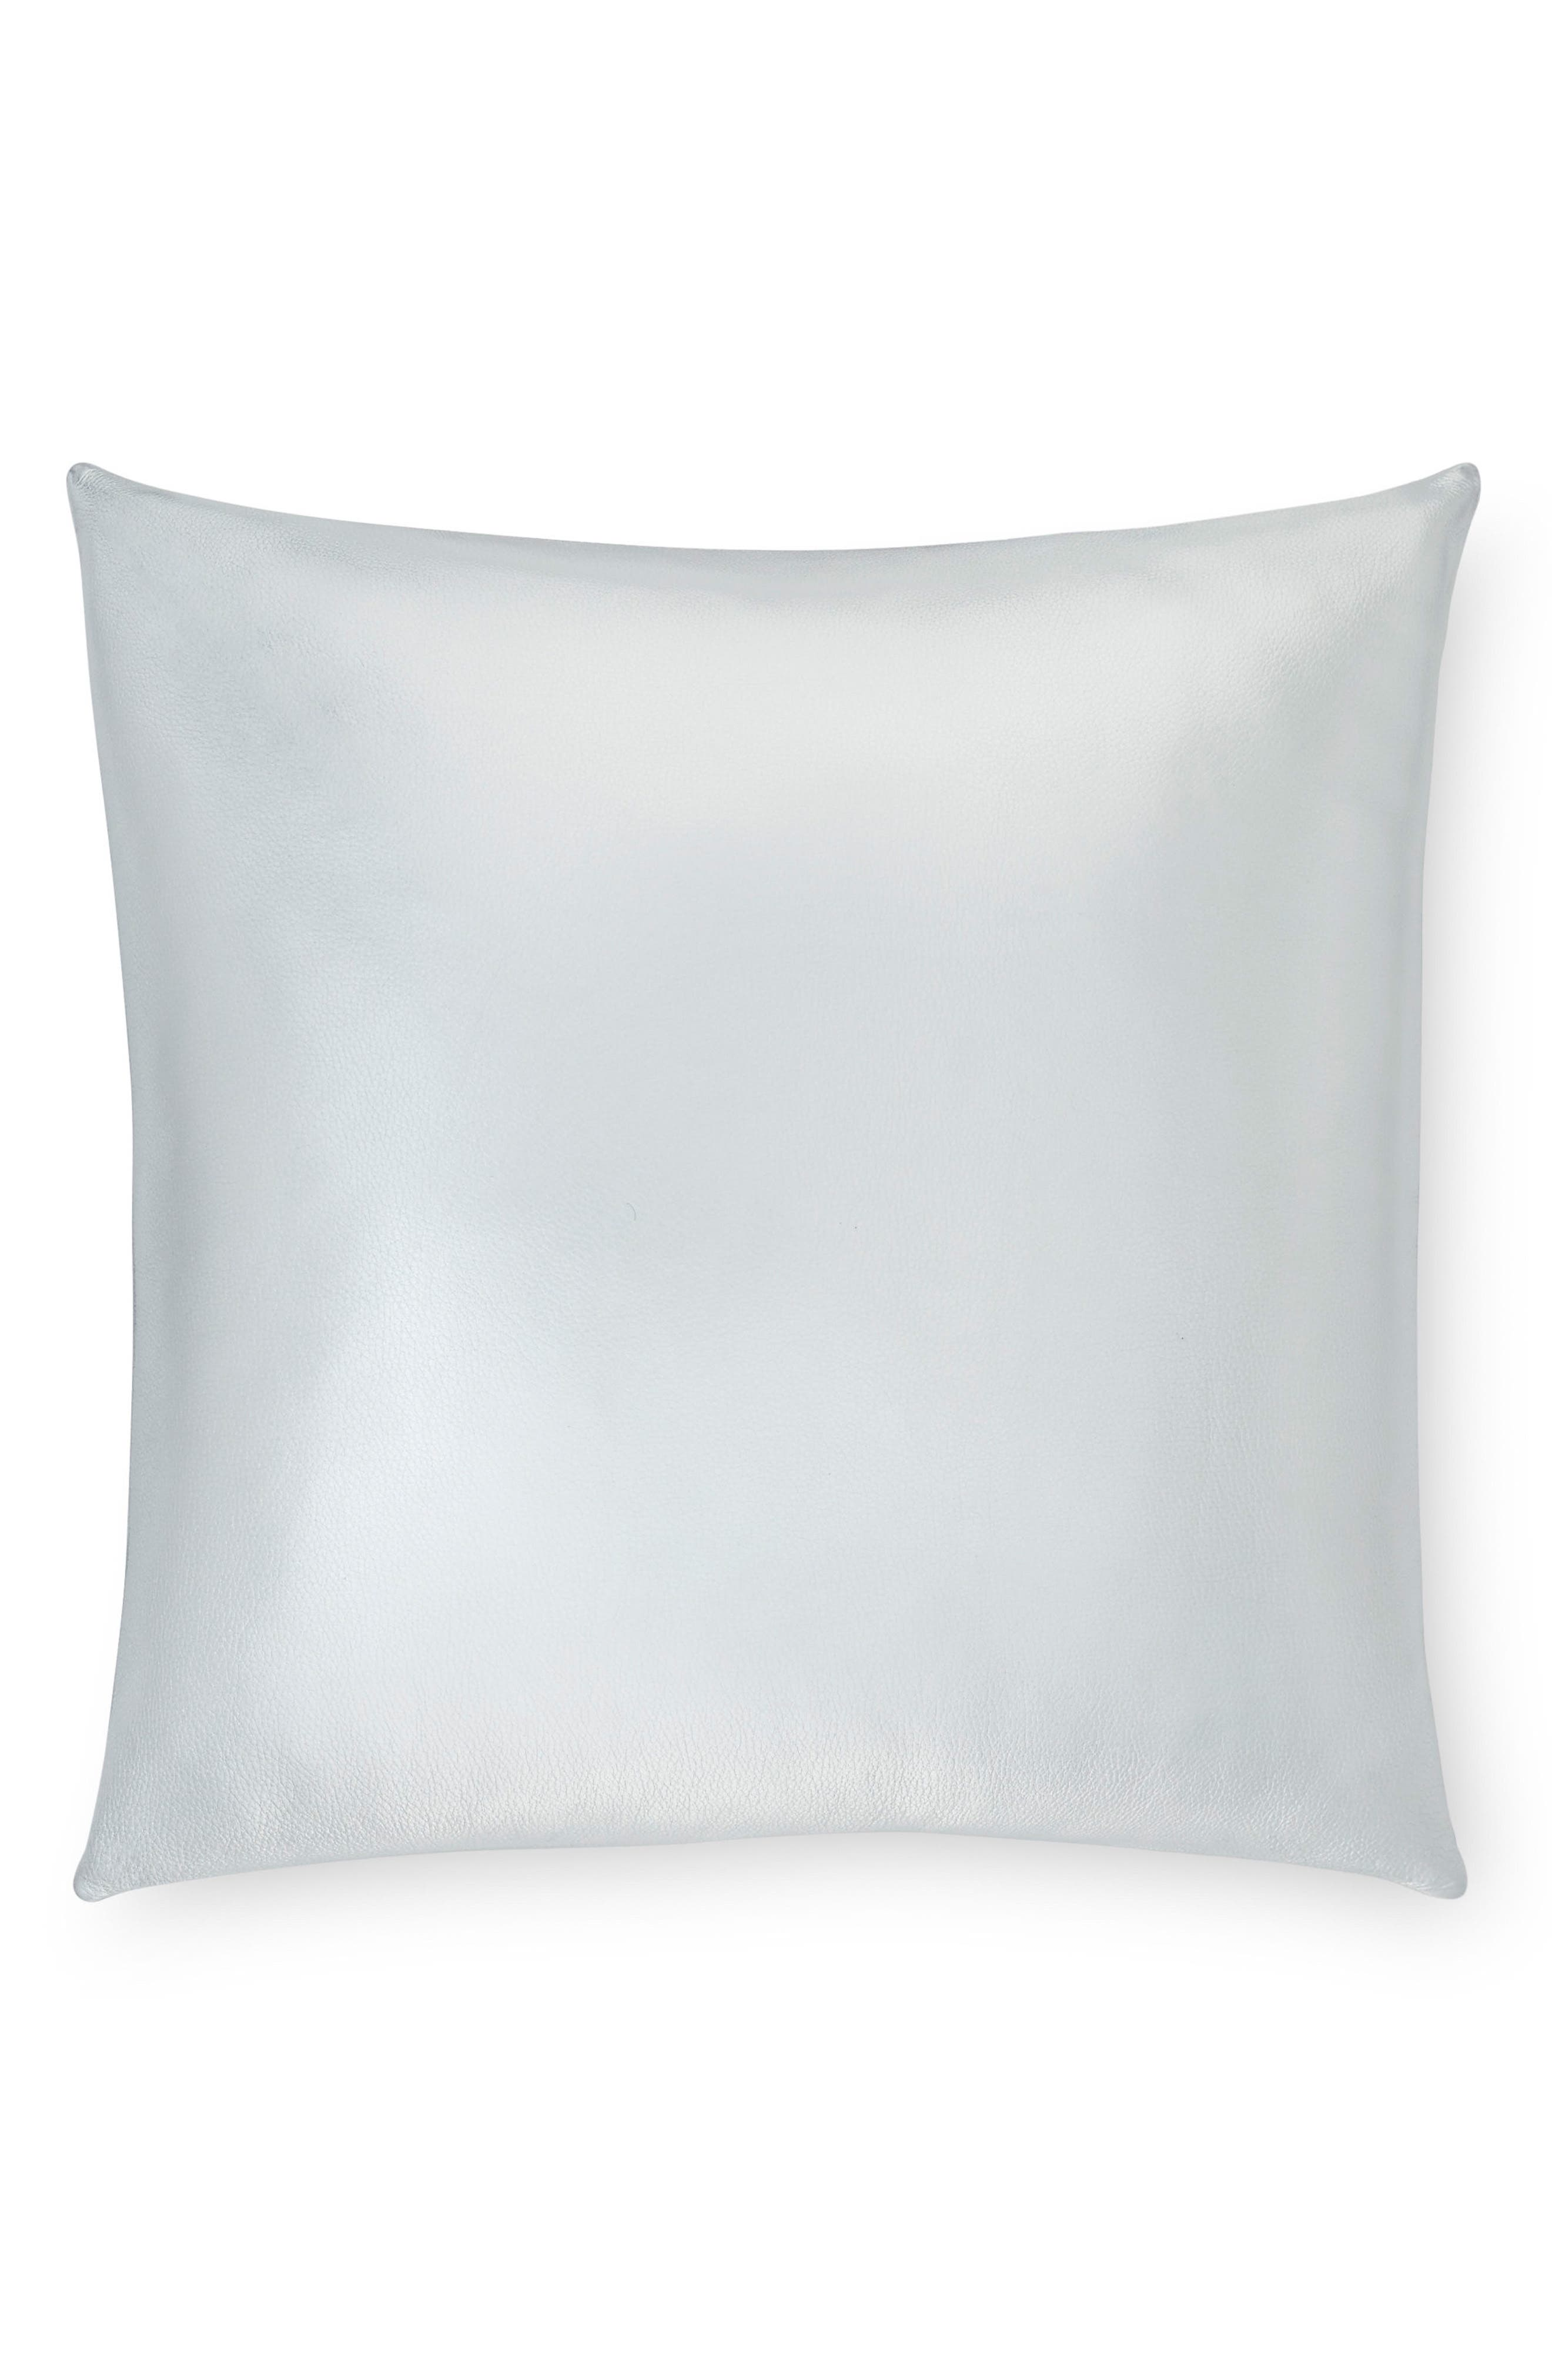 Satta Leather Accent Pillow,                             Main thumbnail 1, color,                             Silver